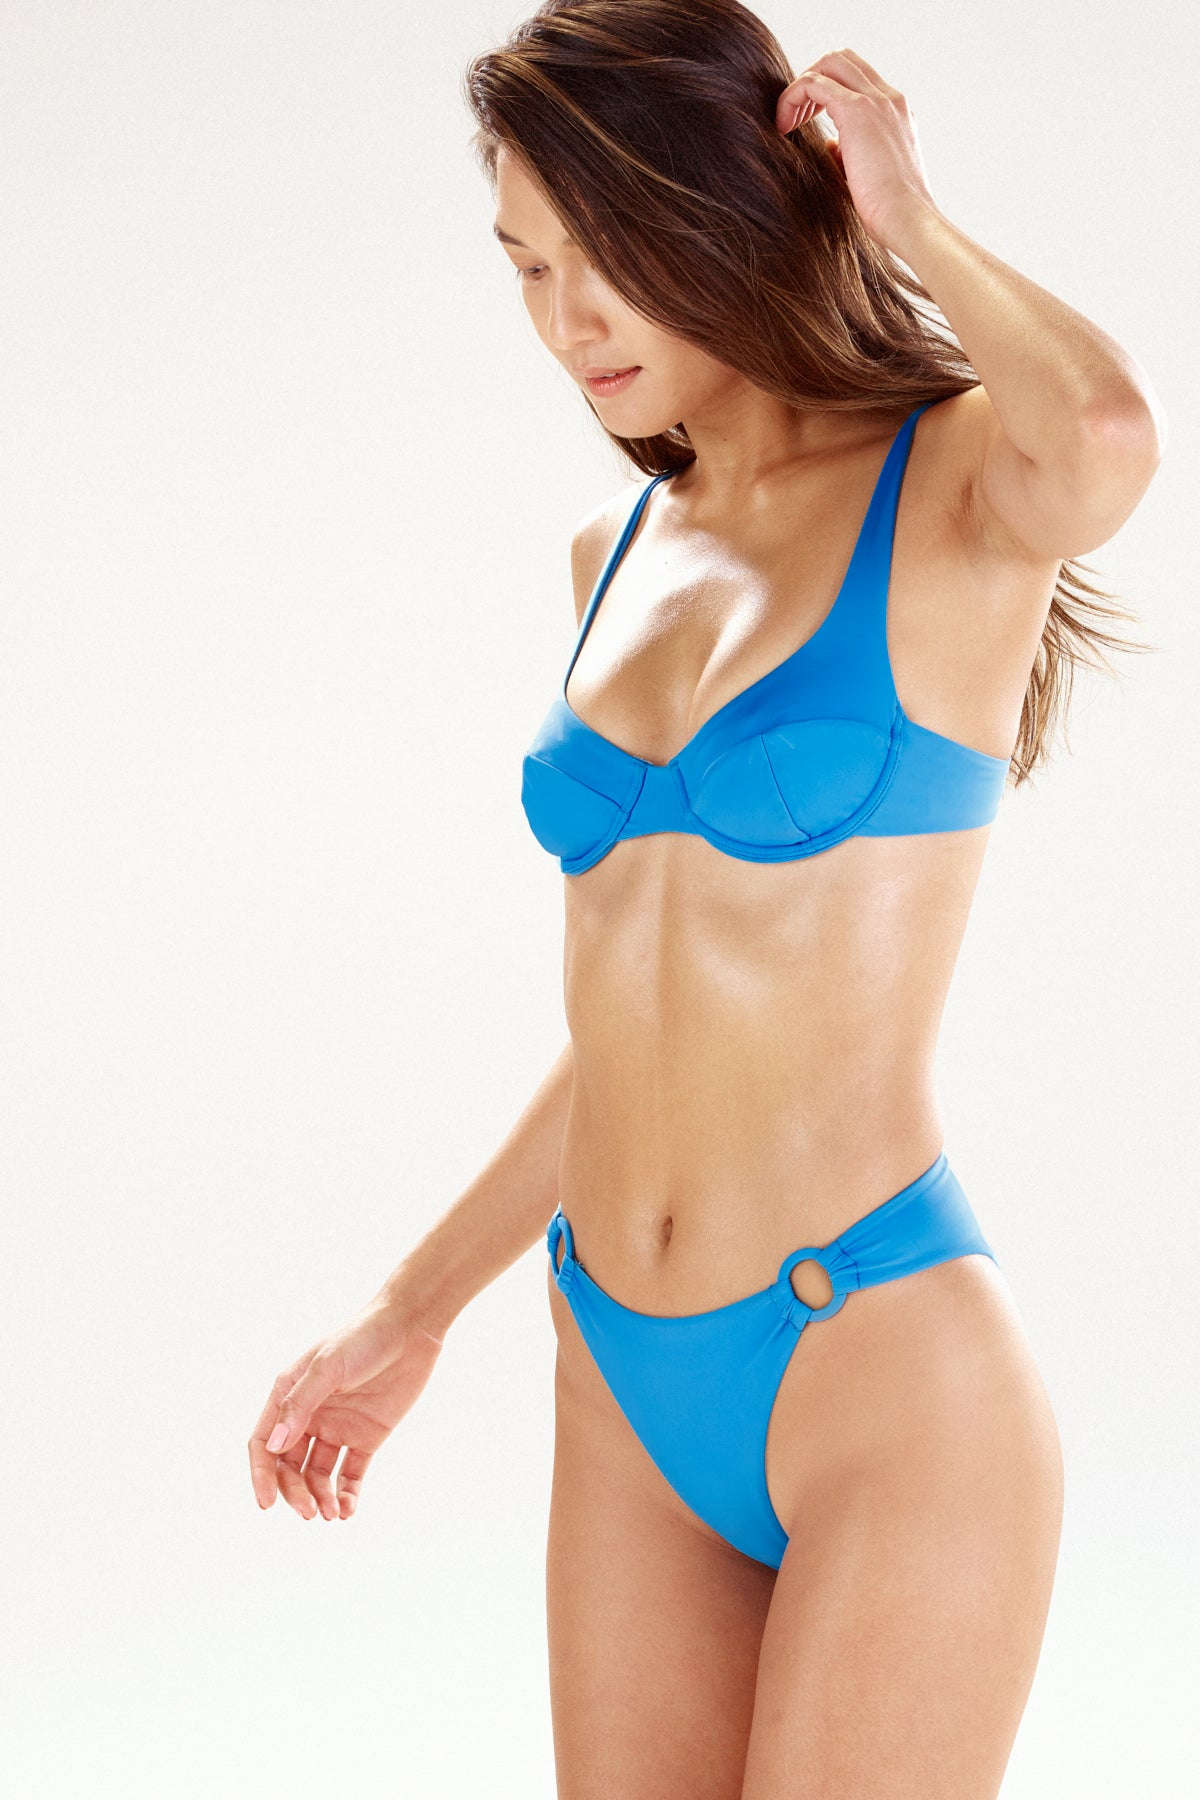 Blue bikini top and bottom | the Como by Ookioh